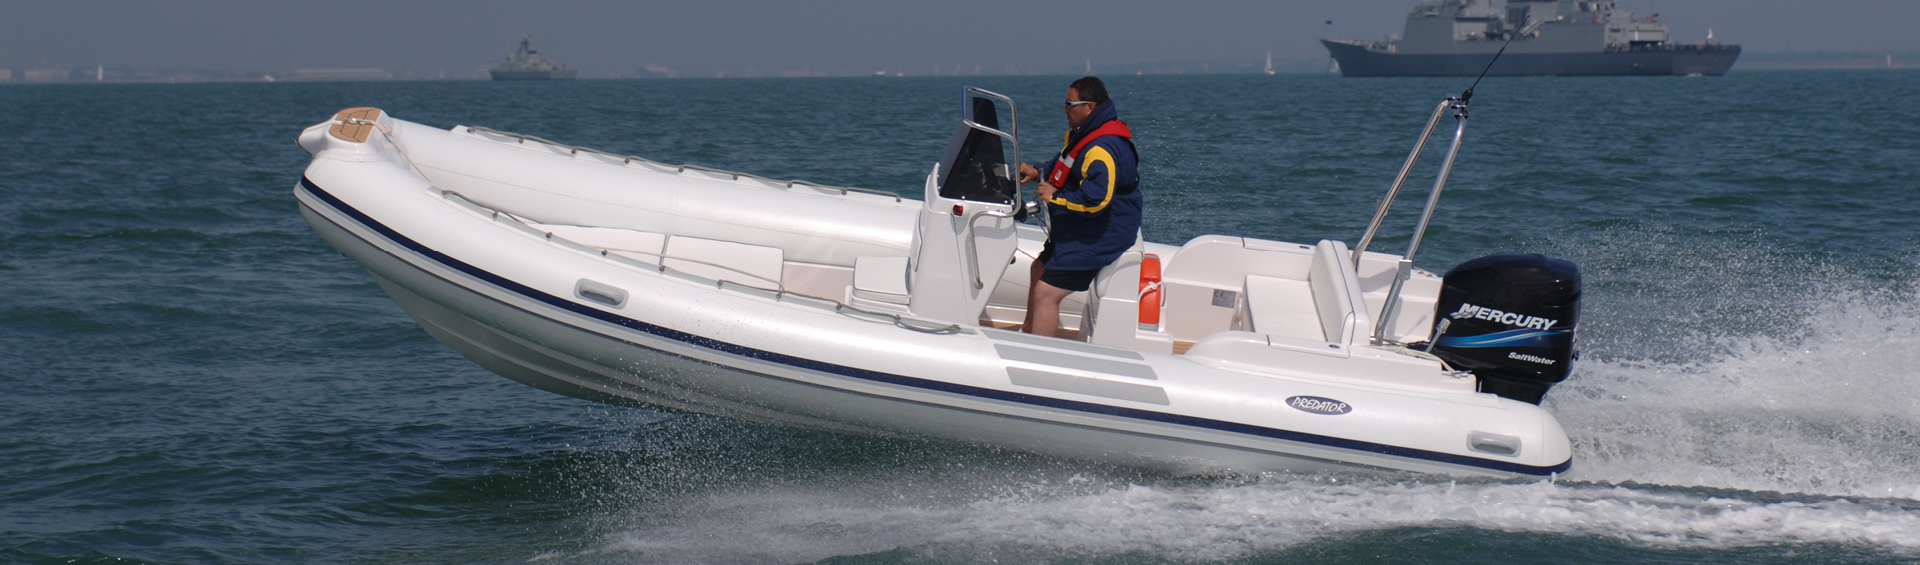 Predator 660 RIB for sale rib